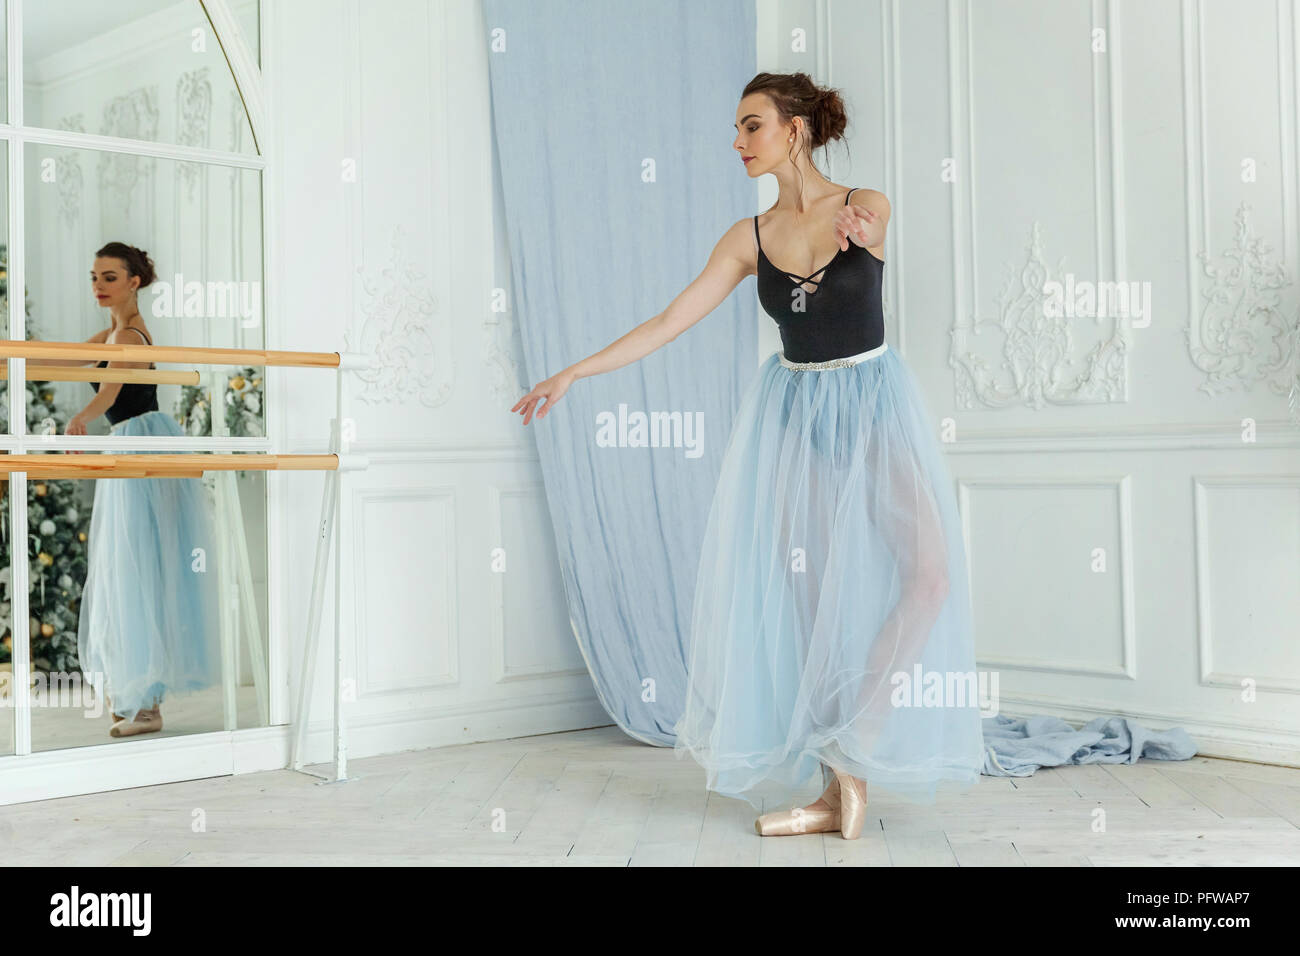 Young classical Ballet dancer side view. Beautiful graceful ballerine practice ballet positions in tutu skirt near large mirror in white light hall. B - Stock Image